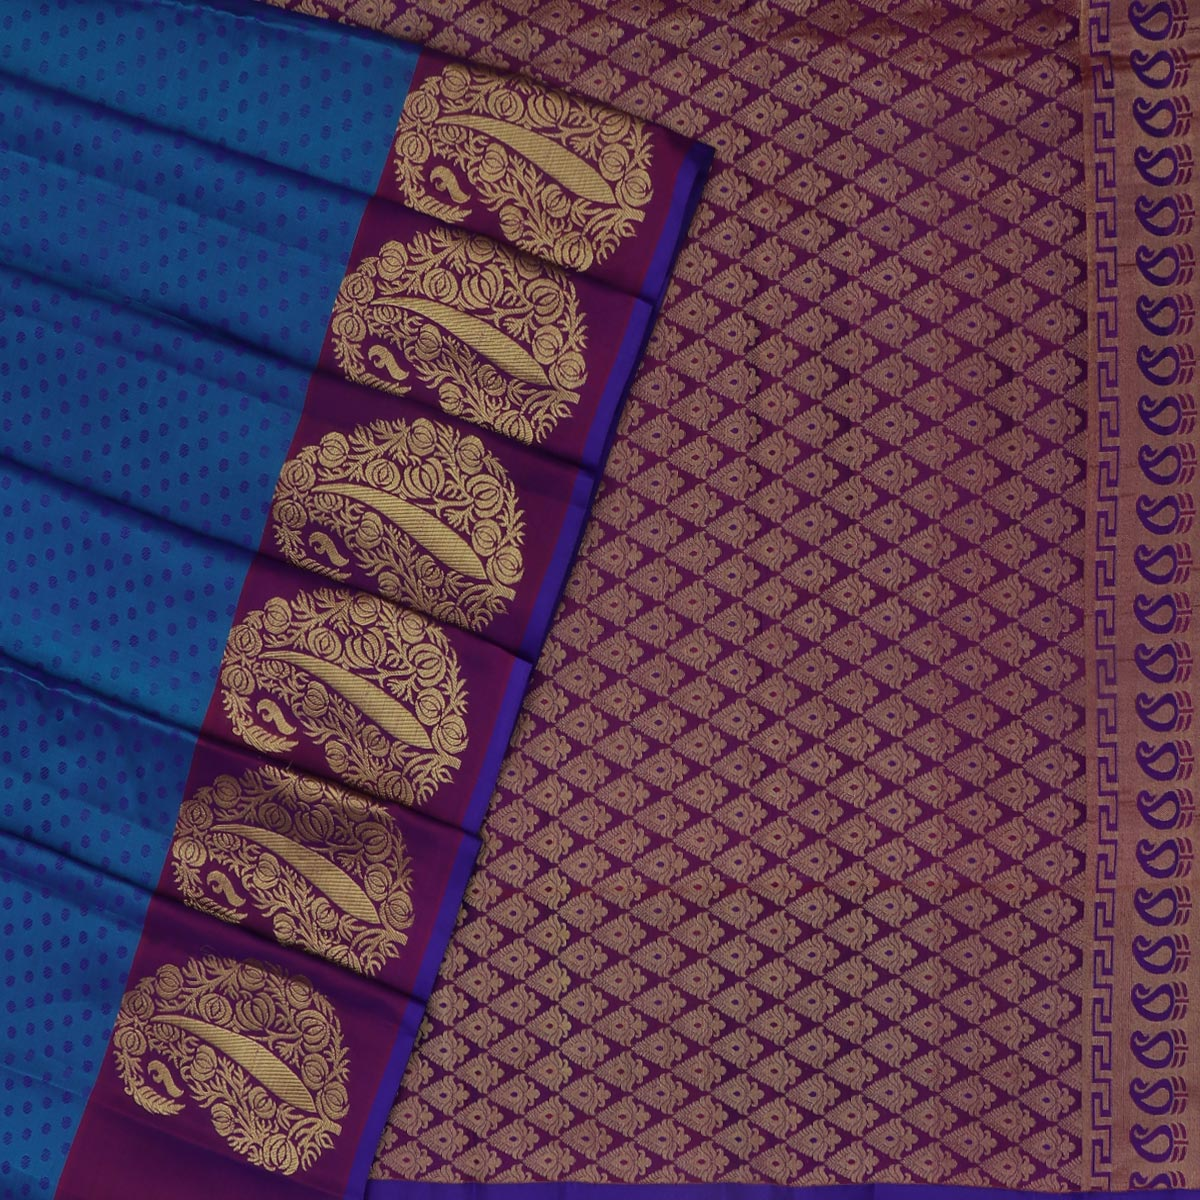 Kanjivaram Silk Saree Peacock Blue and Violet with Mango Zari border for Rs.Rs. 5880.00 | Silk Sarees by Prashanti Sarees